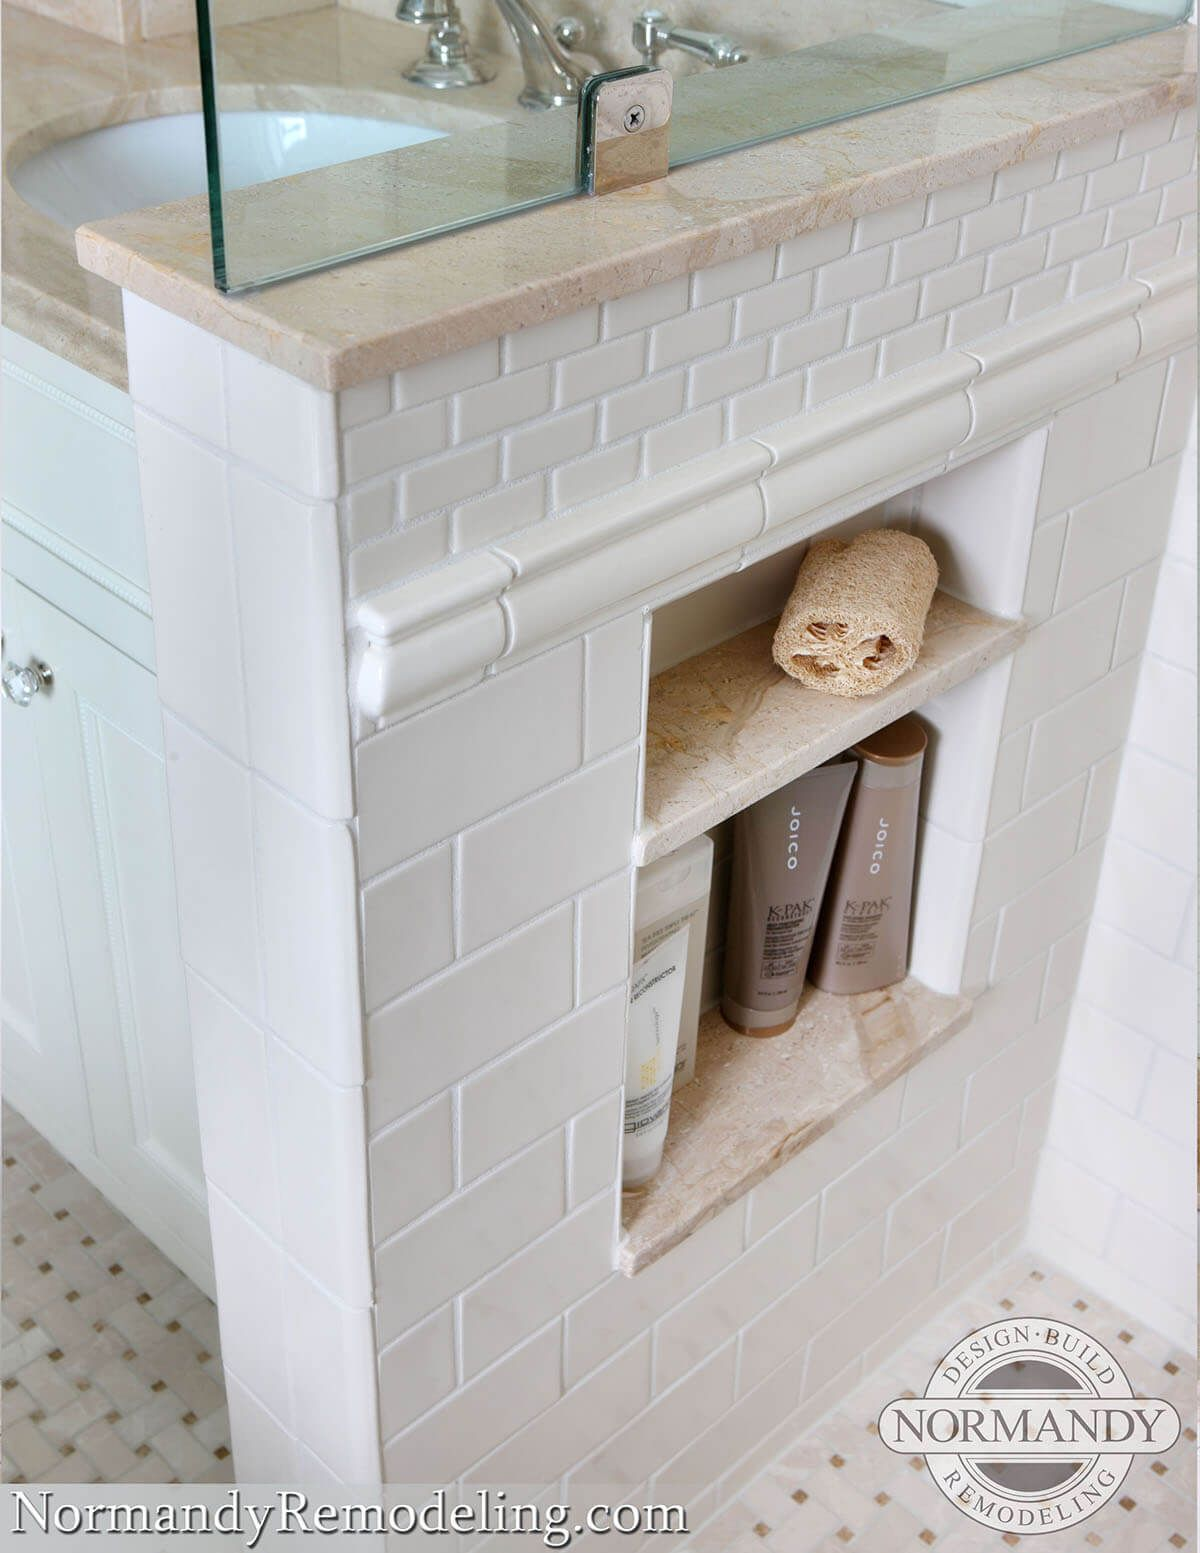 25 Brilliant Built In Bathroom Shelf And Storage Ideas To Keep You Organized With Style Traditional Bathroom Traditional Bathroom Designs Diy Bathroom Makeover